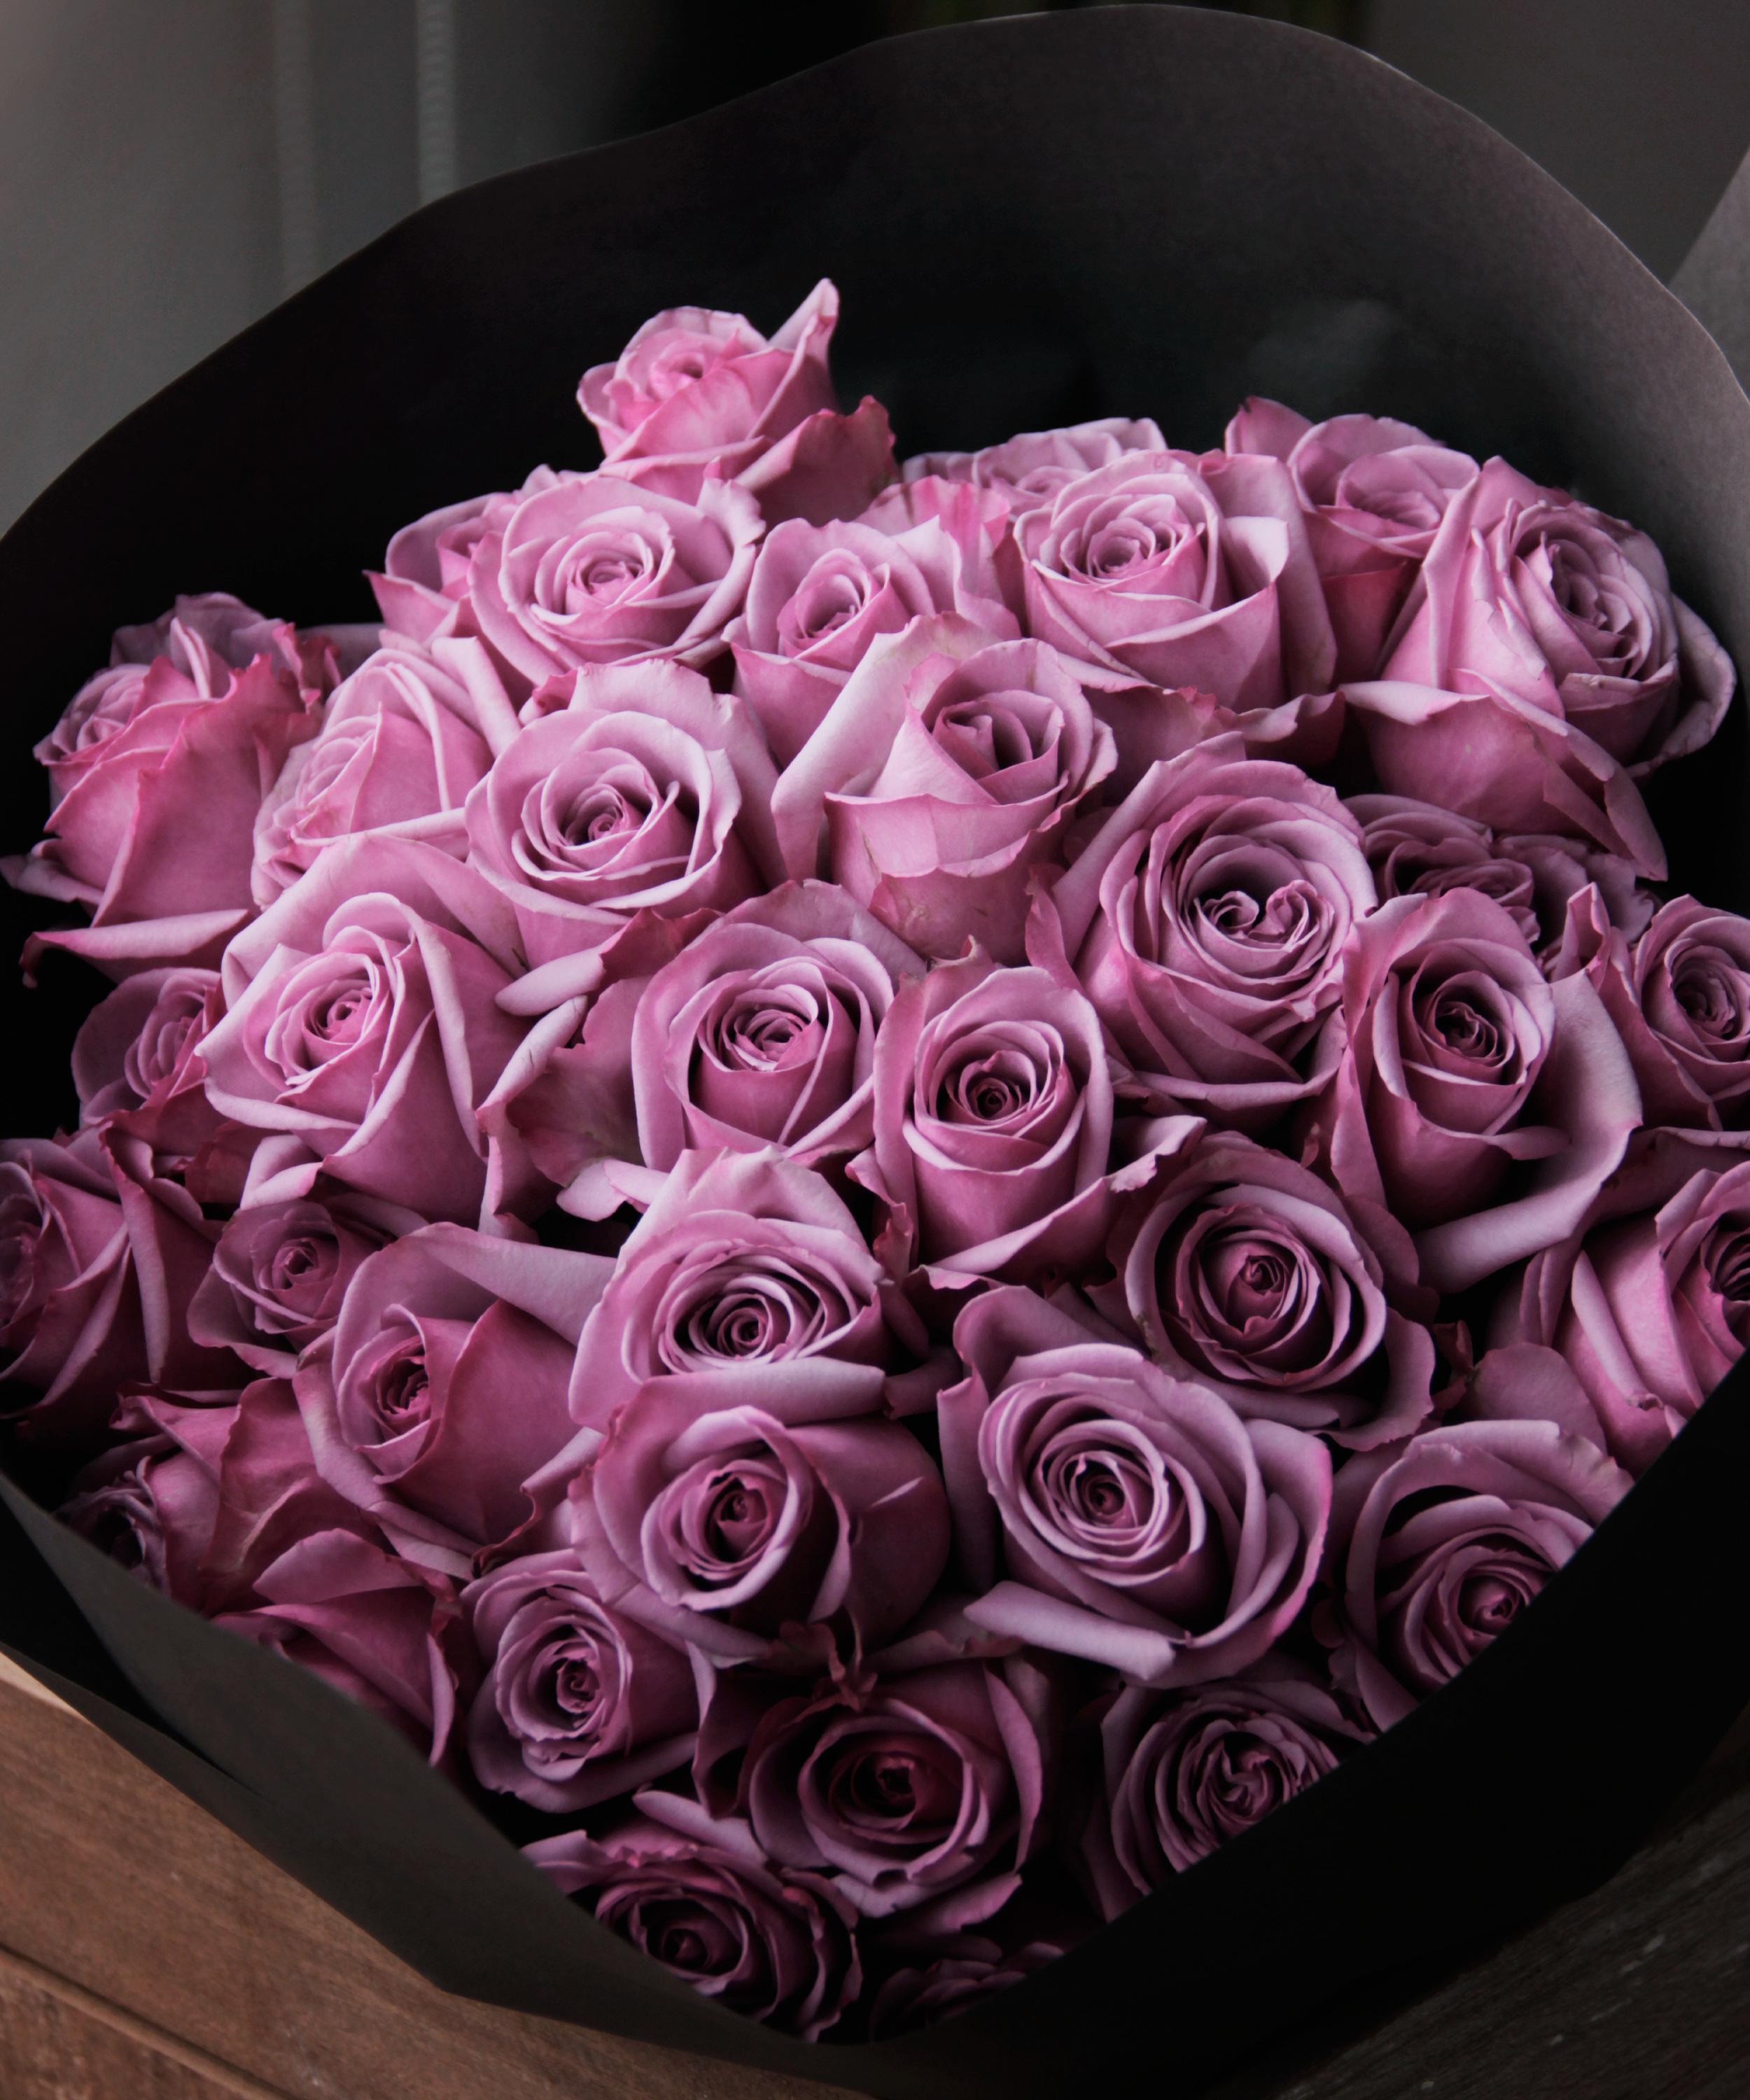 flowers from the heart_1.jpg